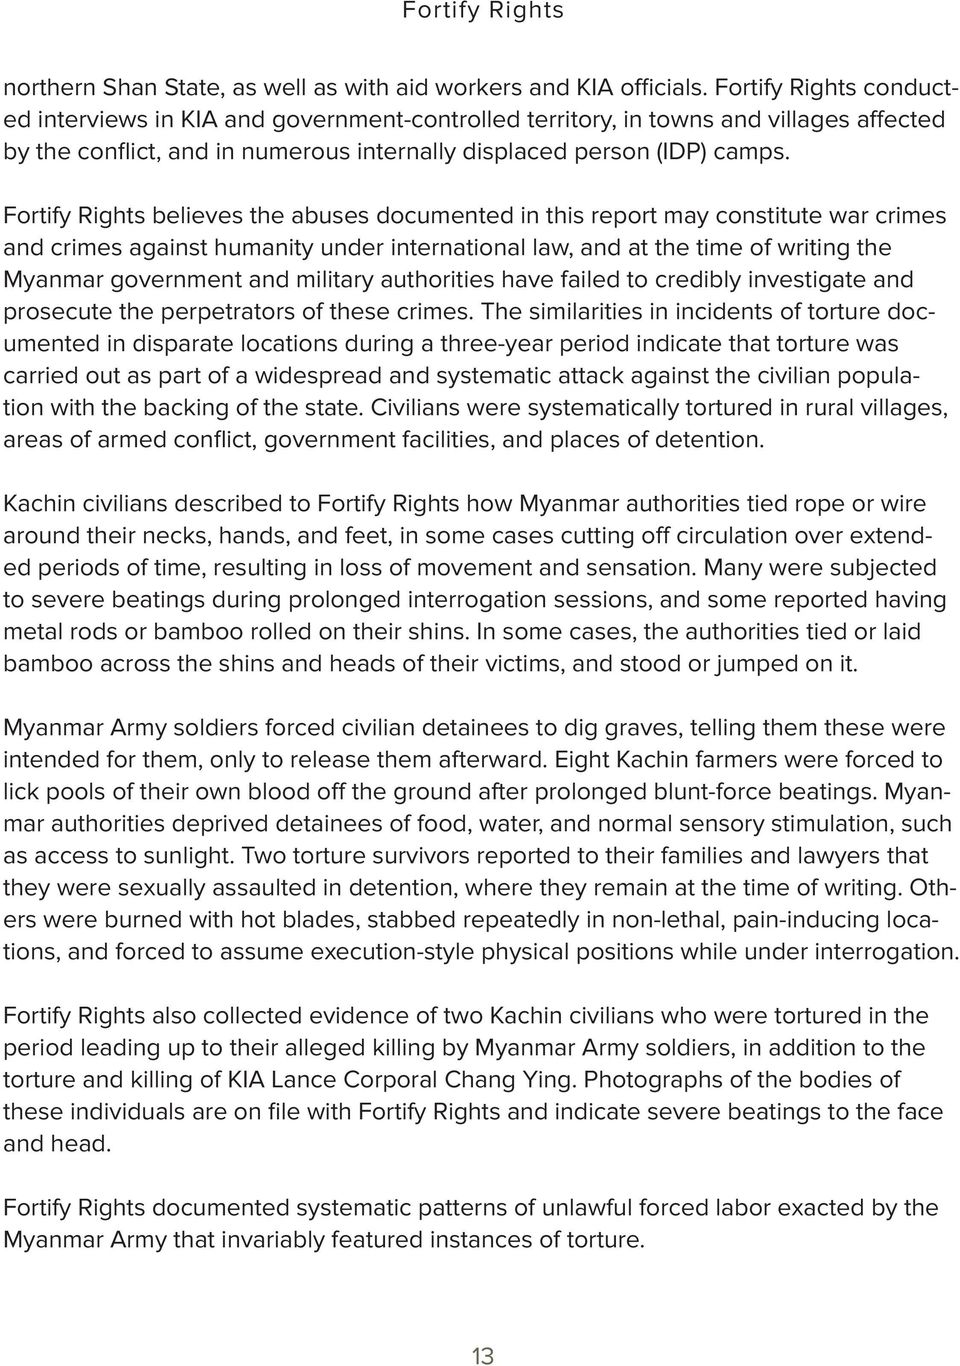 Fortify Rights believes the abuses documented in this report may constitute war crimes and crimes against humanity under international law, and at the time of writing the Myanmar government and